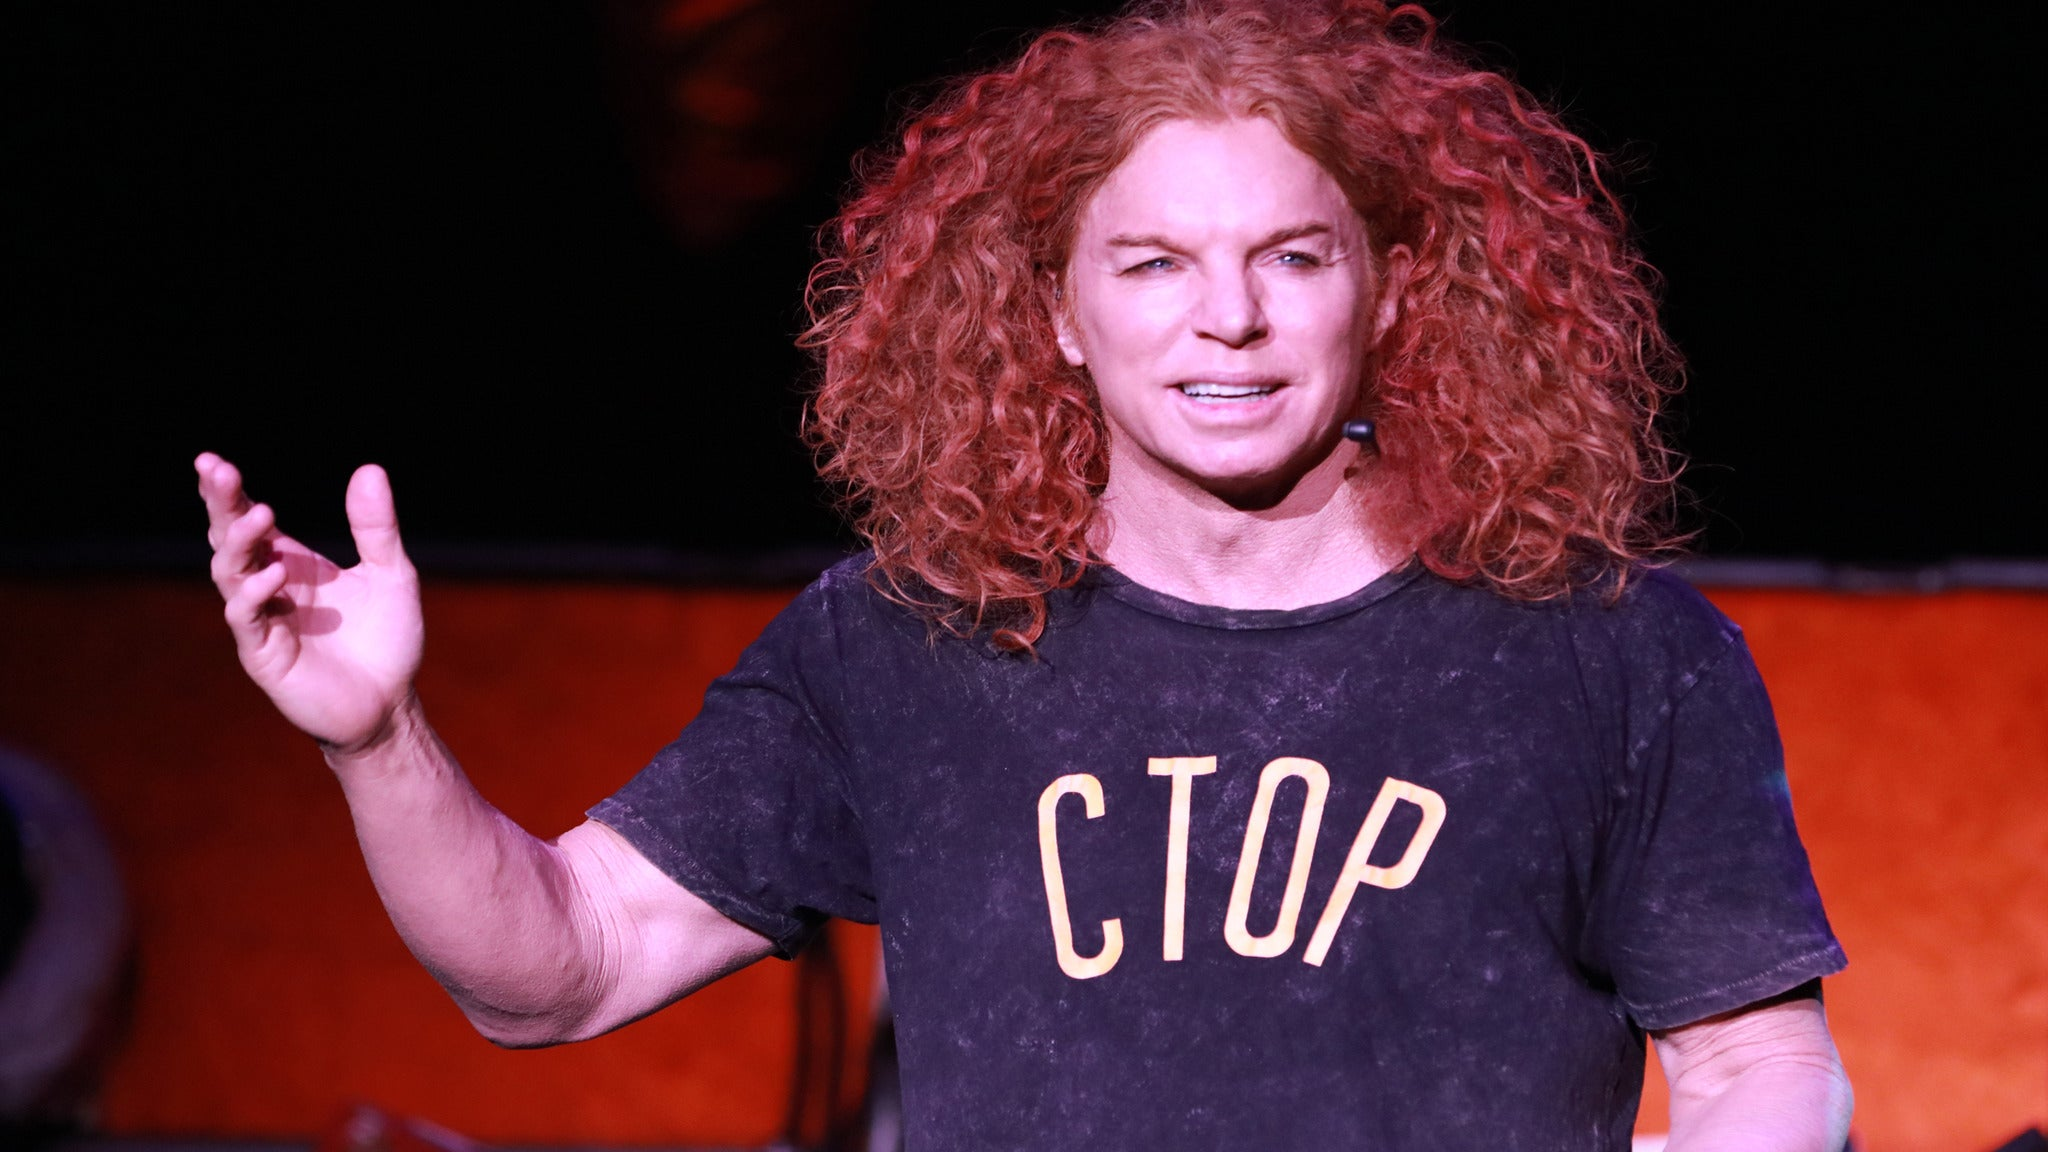 Carrot Top at Ameristar Casino and Hotel